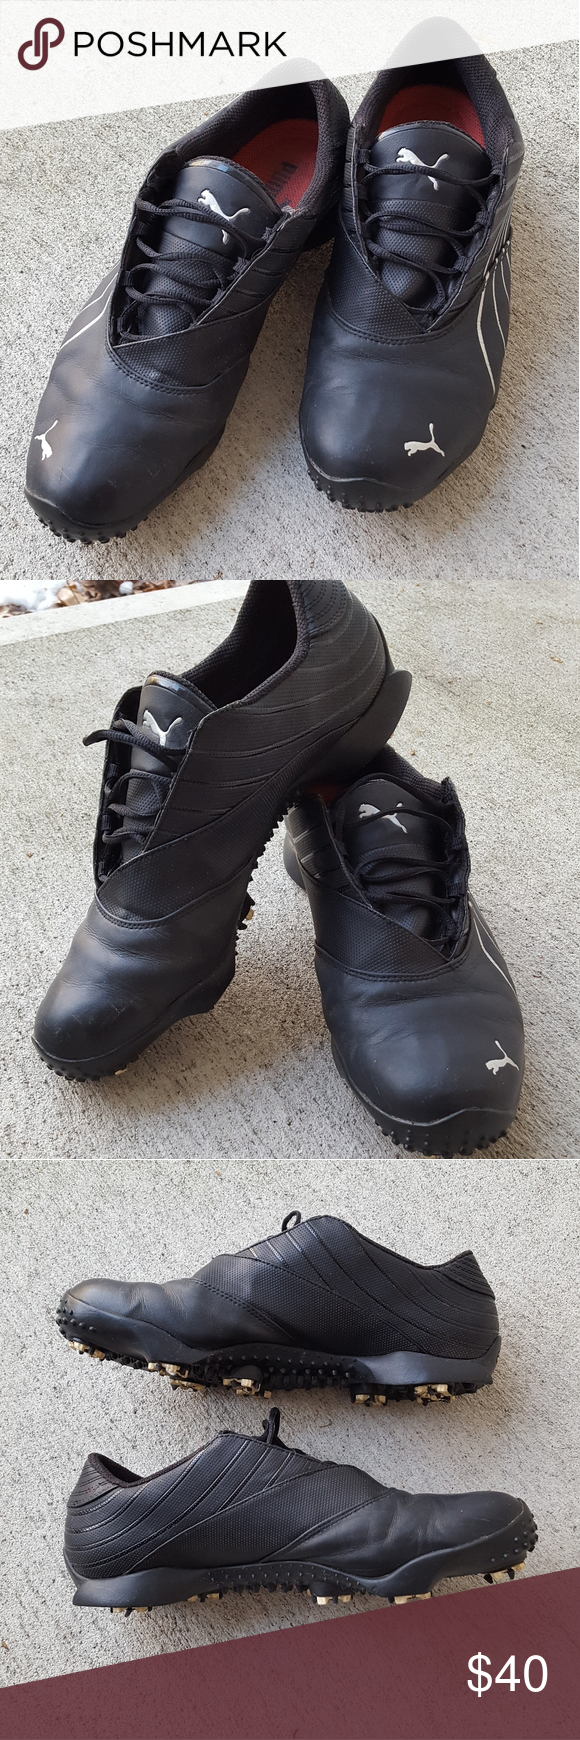 Puma Golf Shoes size 11 Puma Golf Shoes in very great condition. Size 11 and feels like you're not wearing shoes at all, more like a snug pair of socks!! I used these for 1 season and then broke my shoulder and haven't swung a club since, forgot I had them. Will make someone's golf game better! Will LOVE them!!! Puma Shoes Athletic Shoes #shoegame